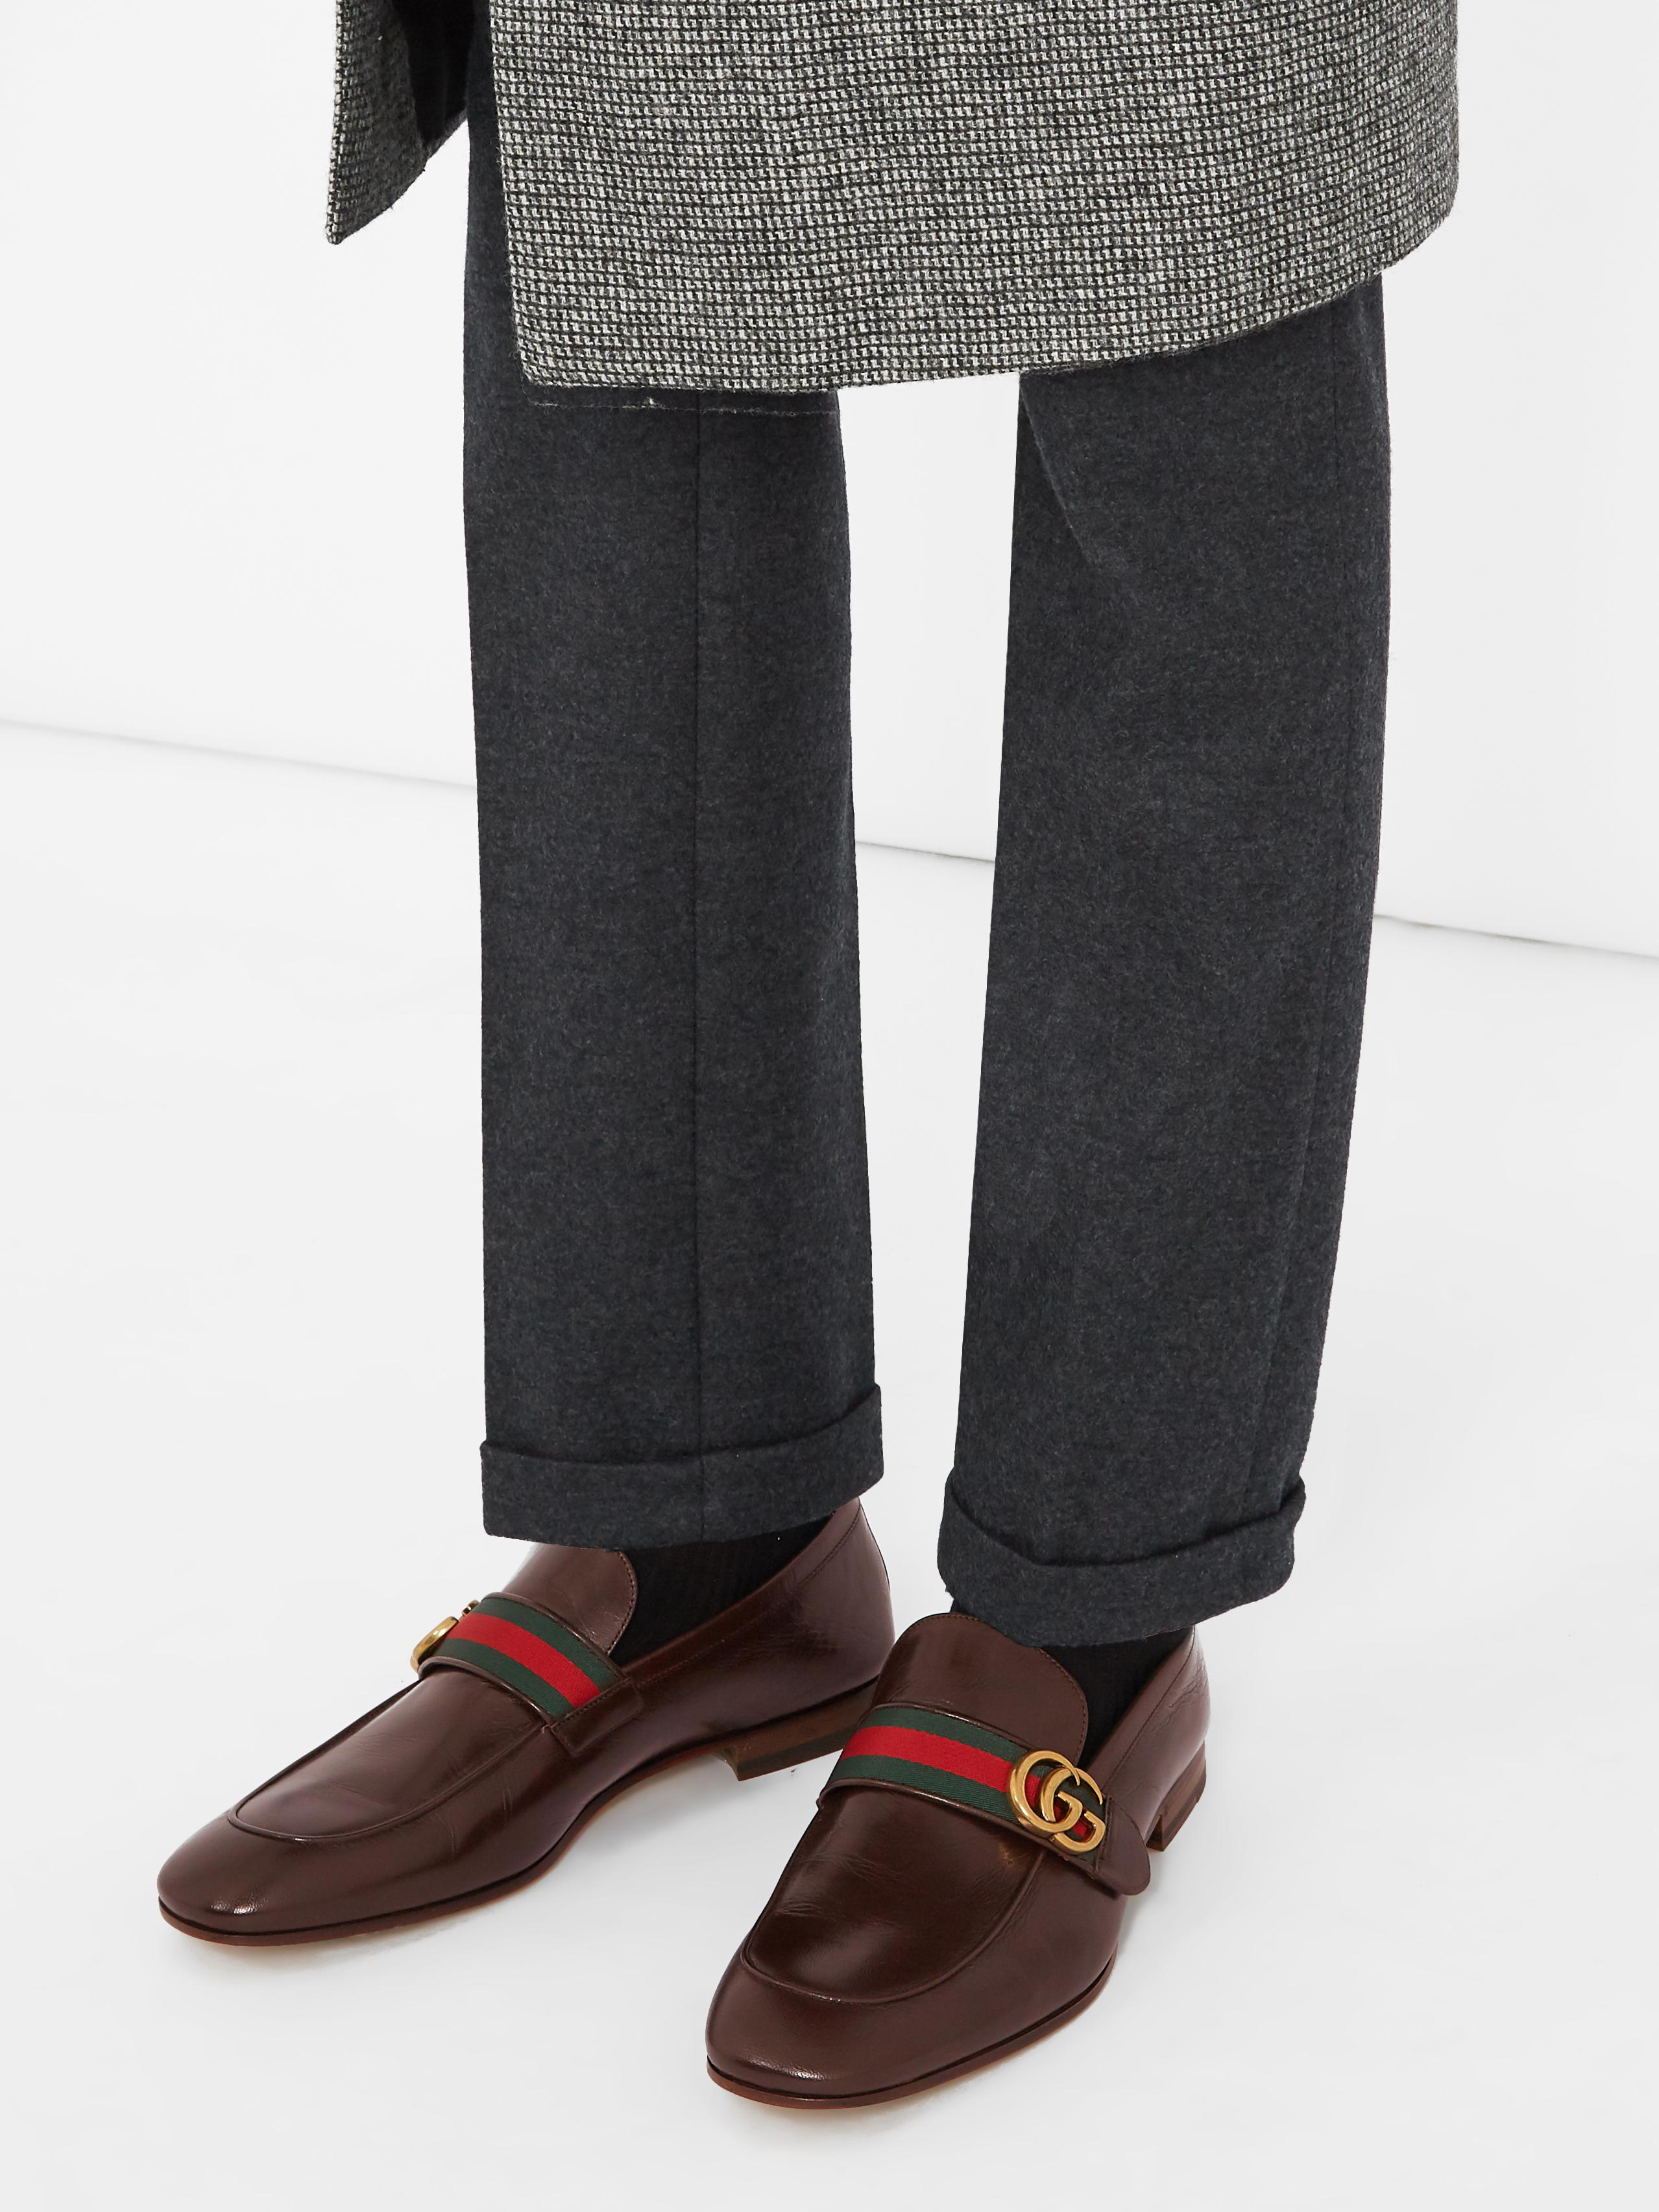 1c3ff17b2c3 Lyst - Gucci Donnie Gg Leather Loafers in Brown for Men